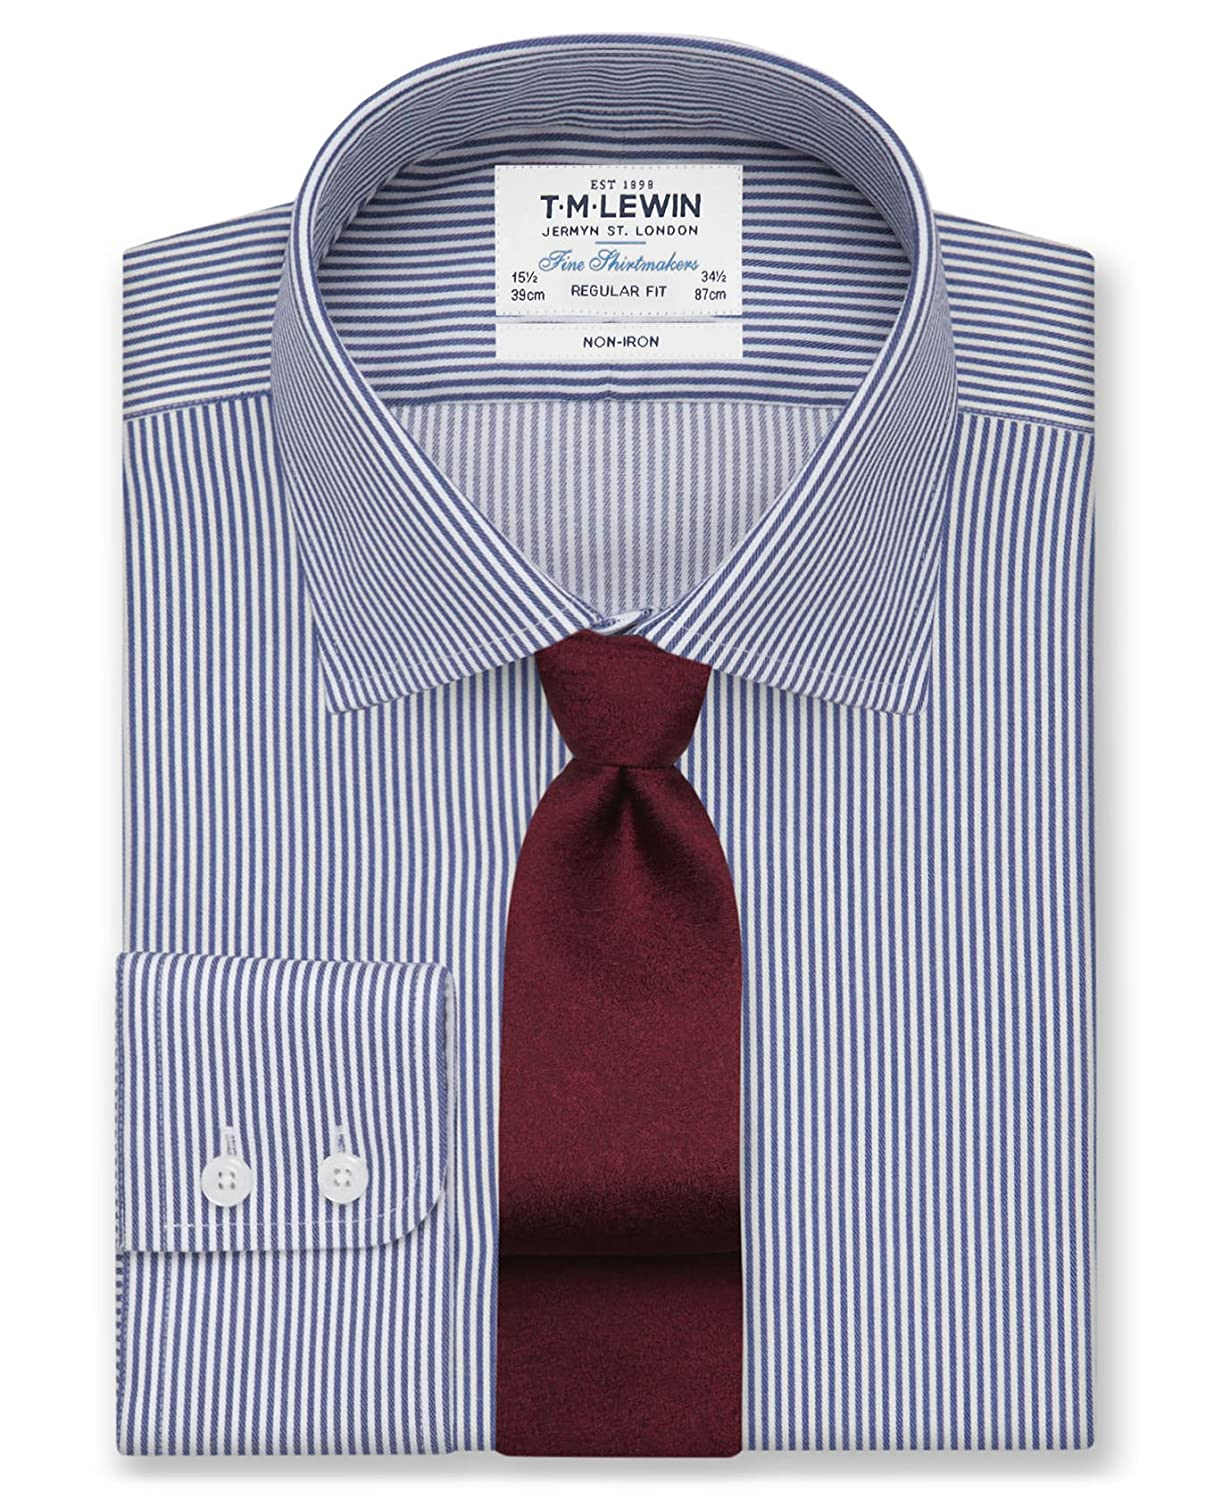 T.M.Lewin Non-Iron Blue Dogtooth Cutaway Collar Fitted Shirt